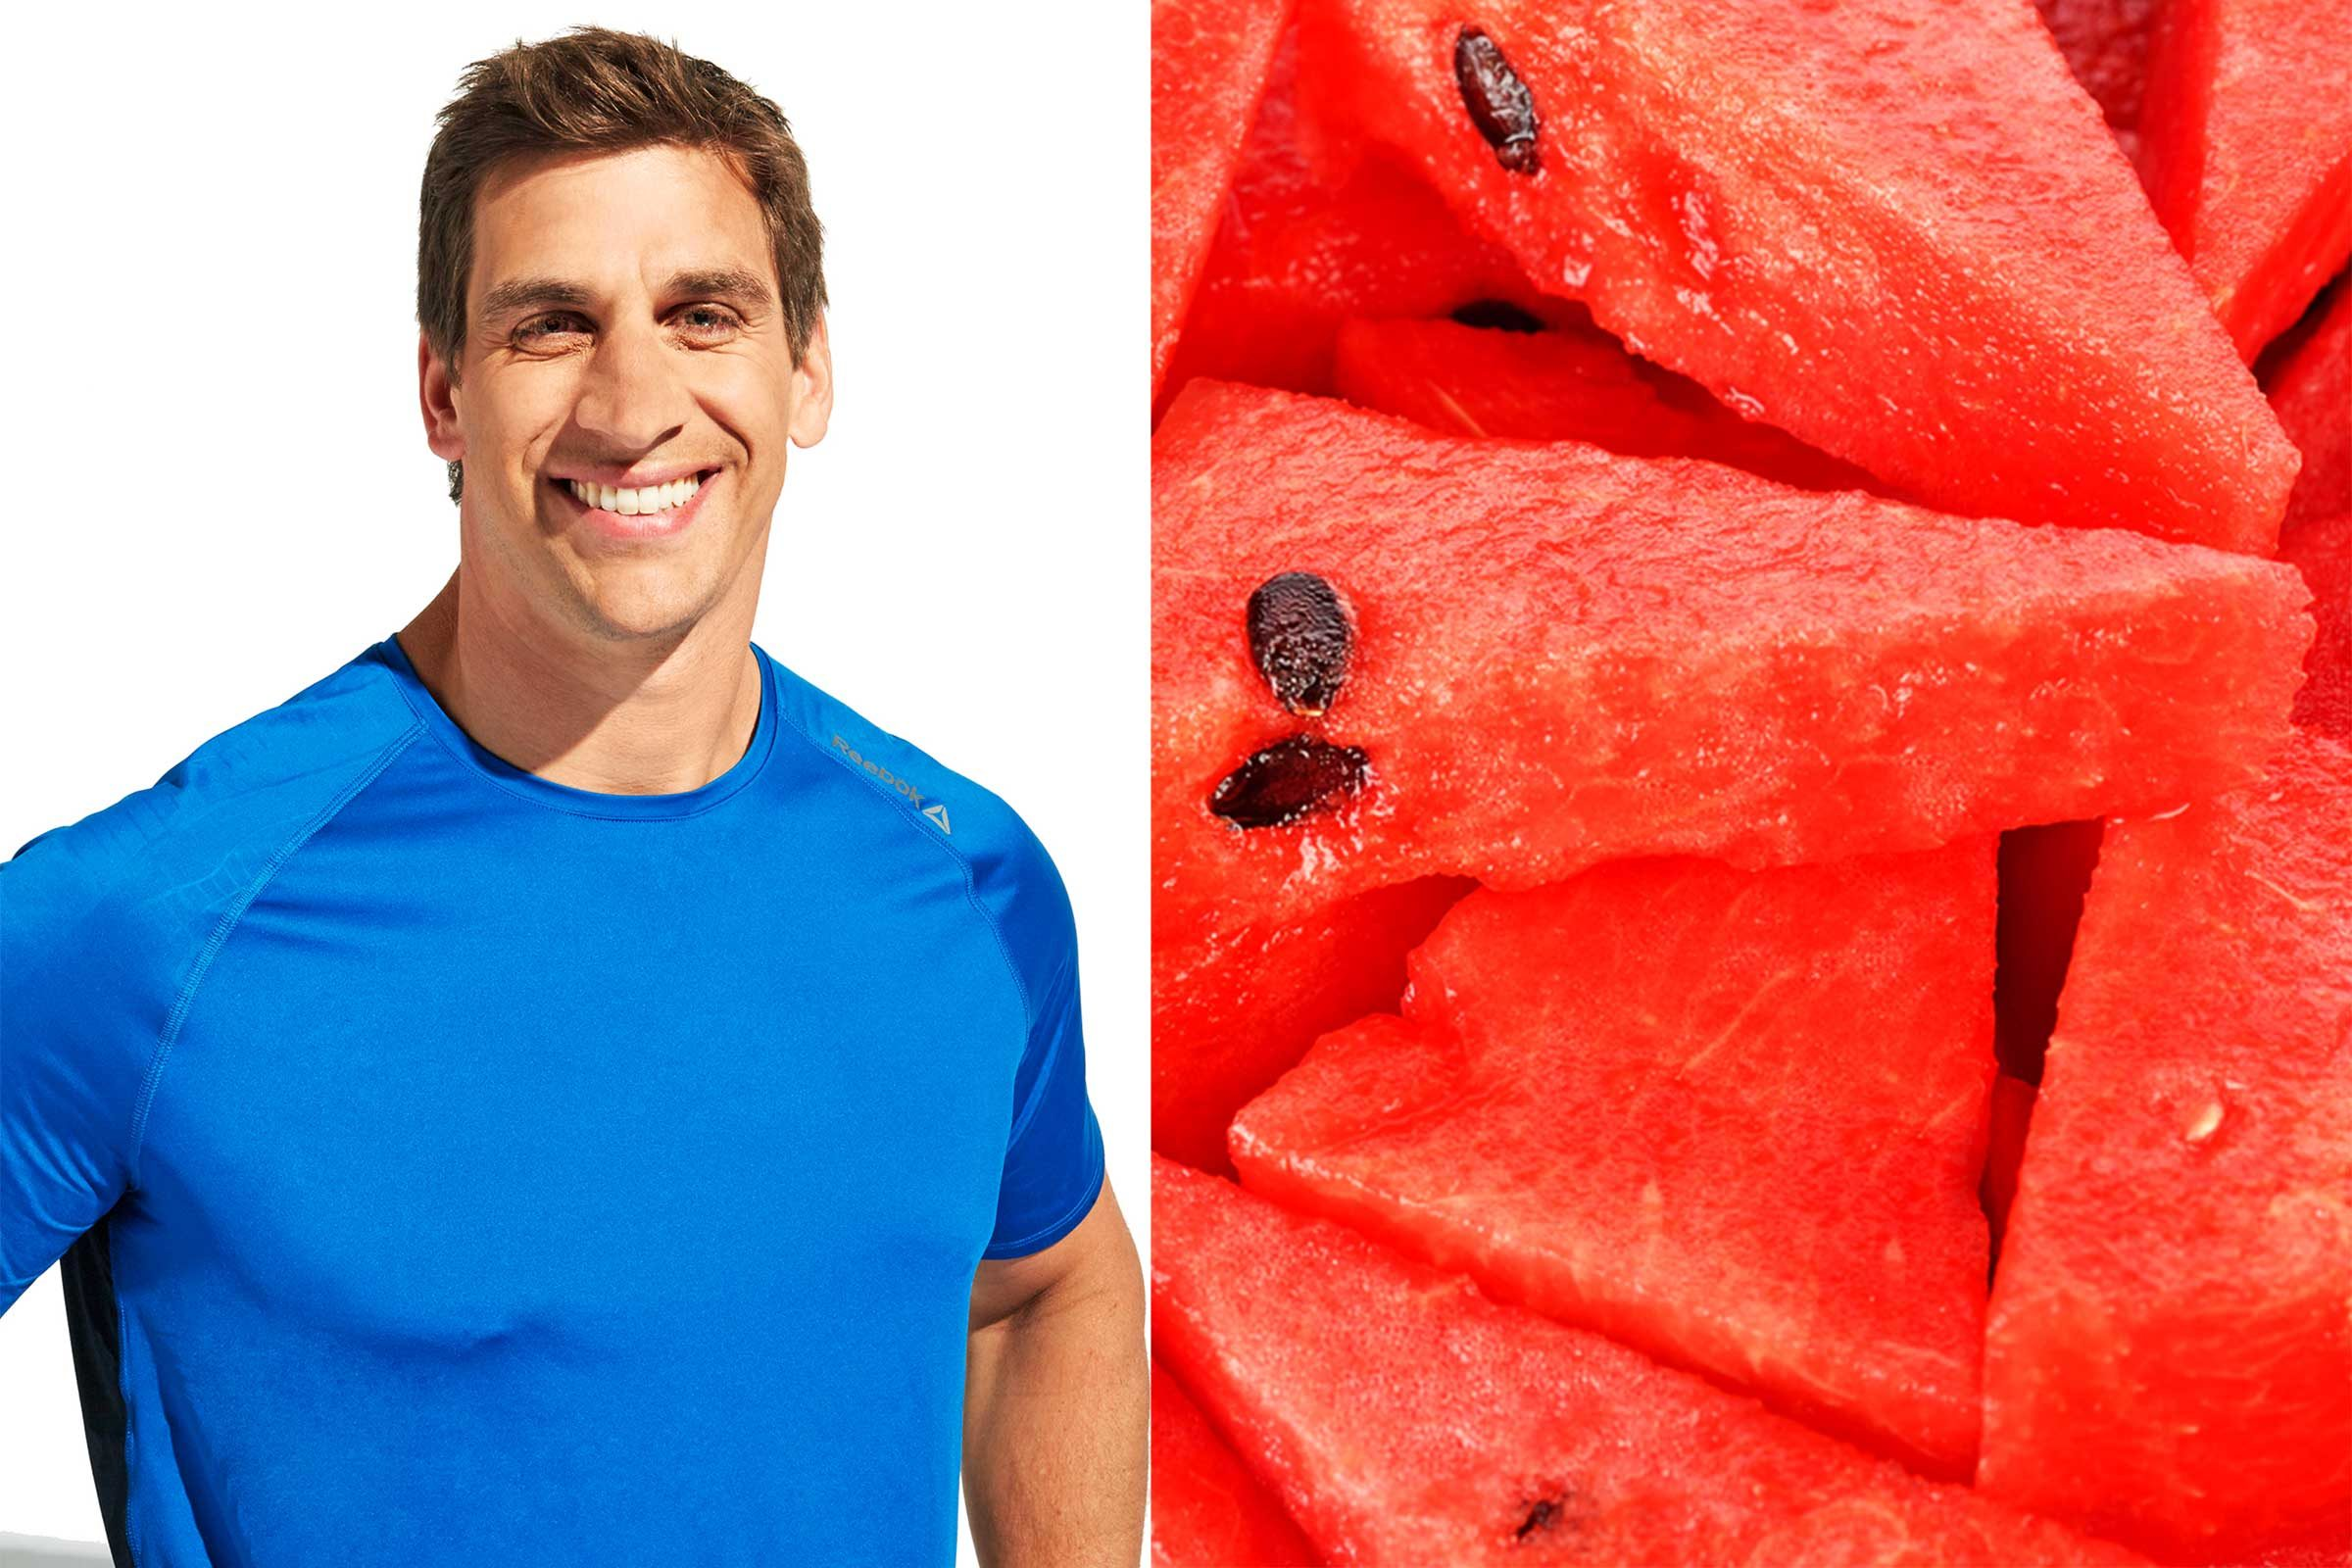 Chris Mohr and watermelon